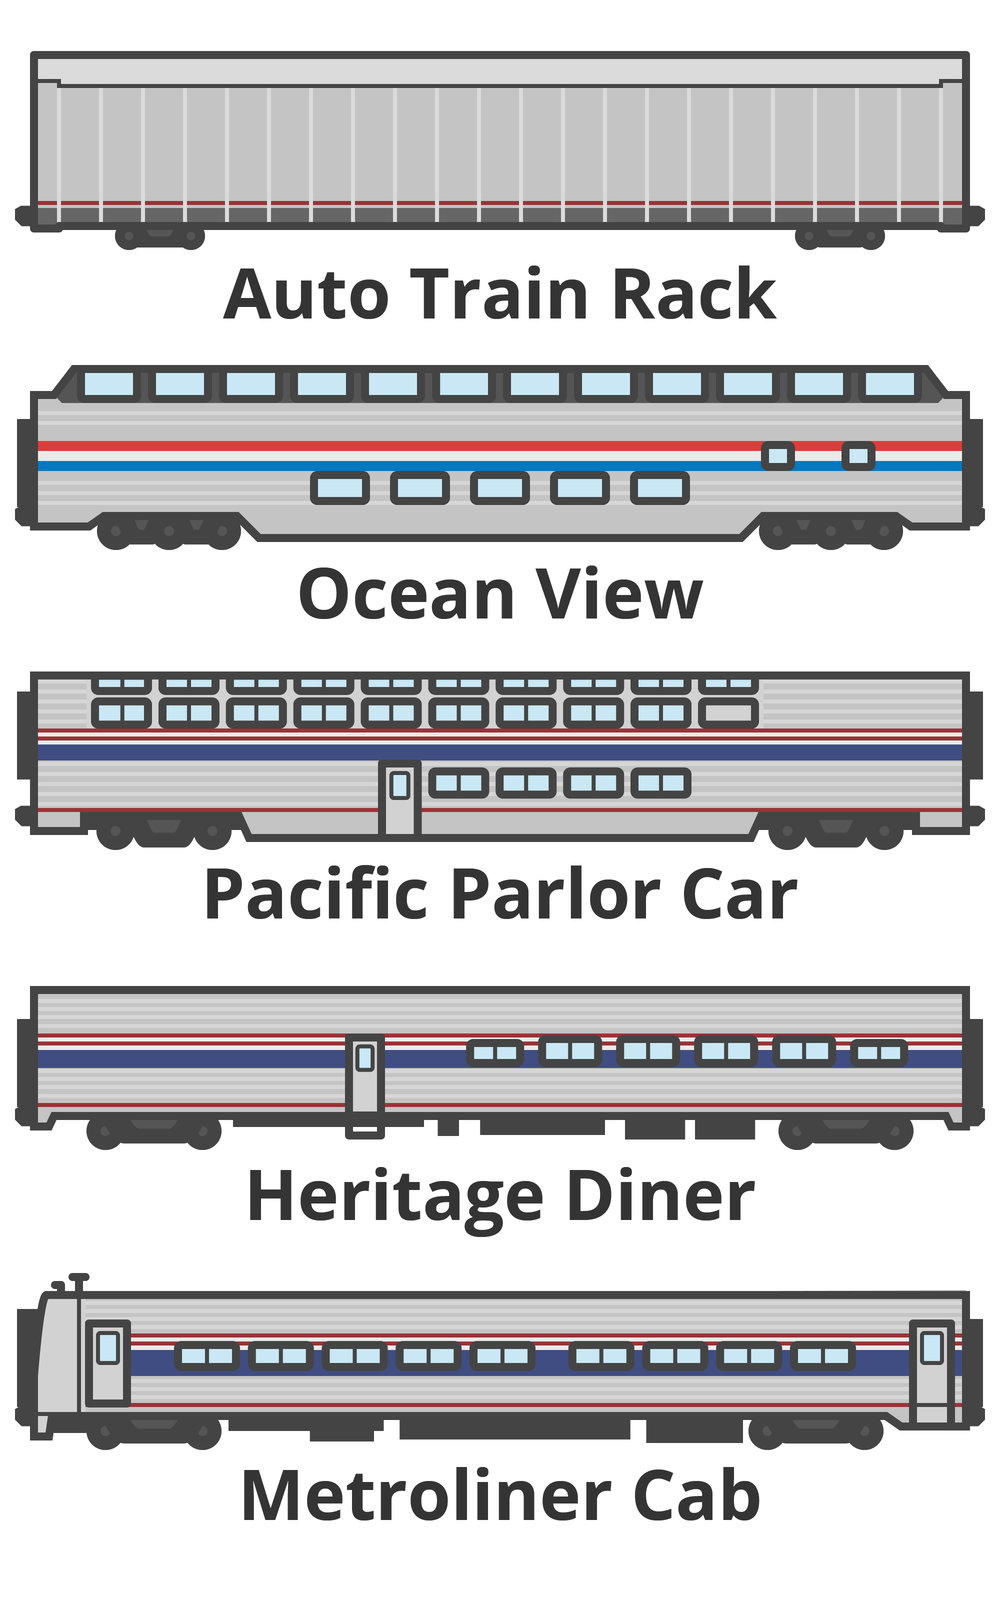 amtrak-metroliner.jpg